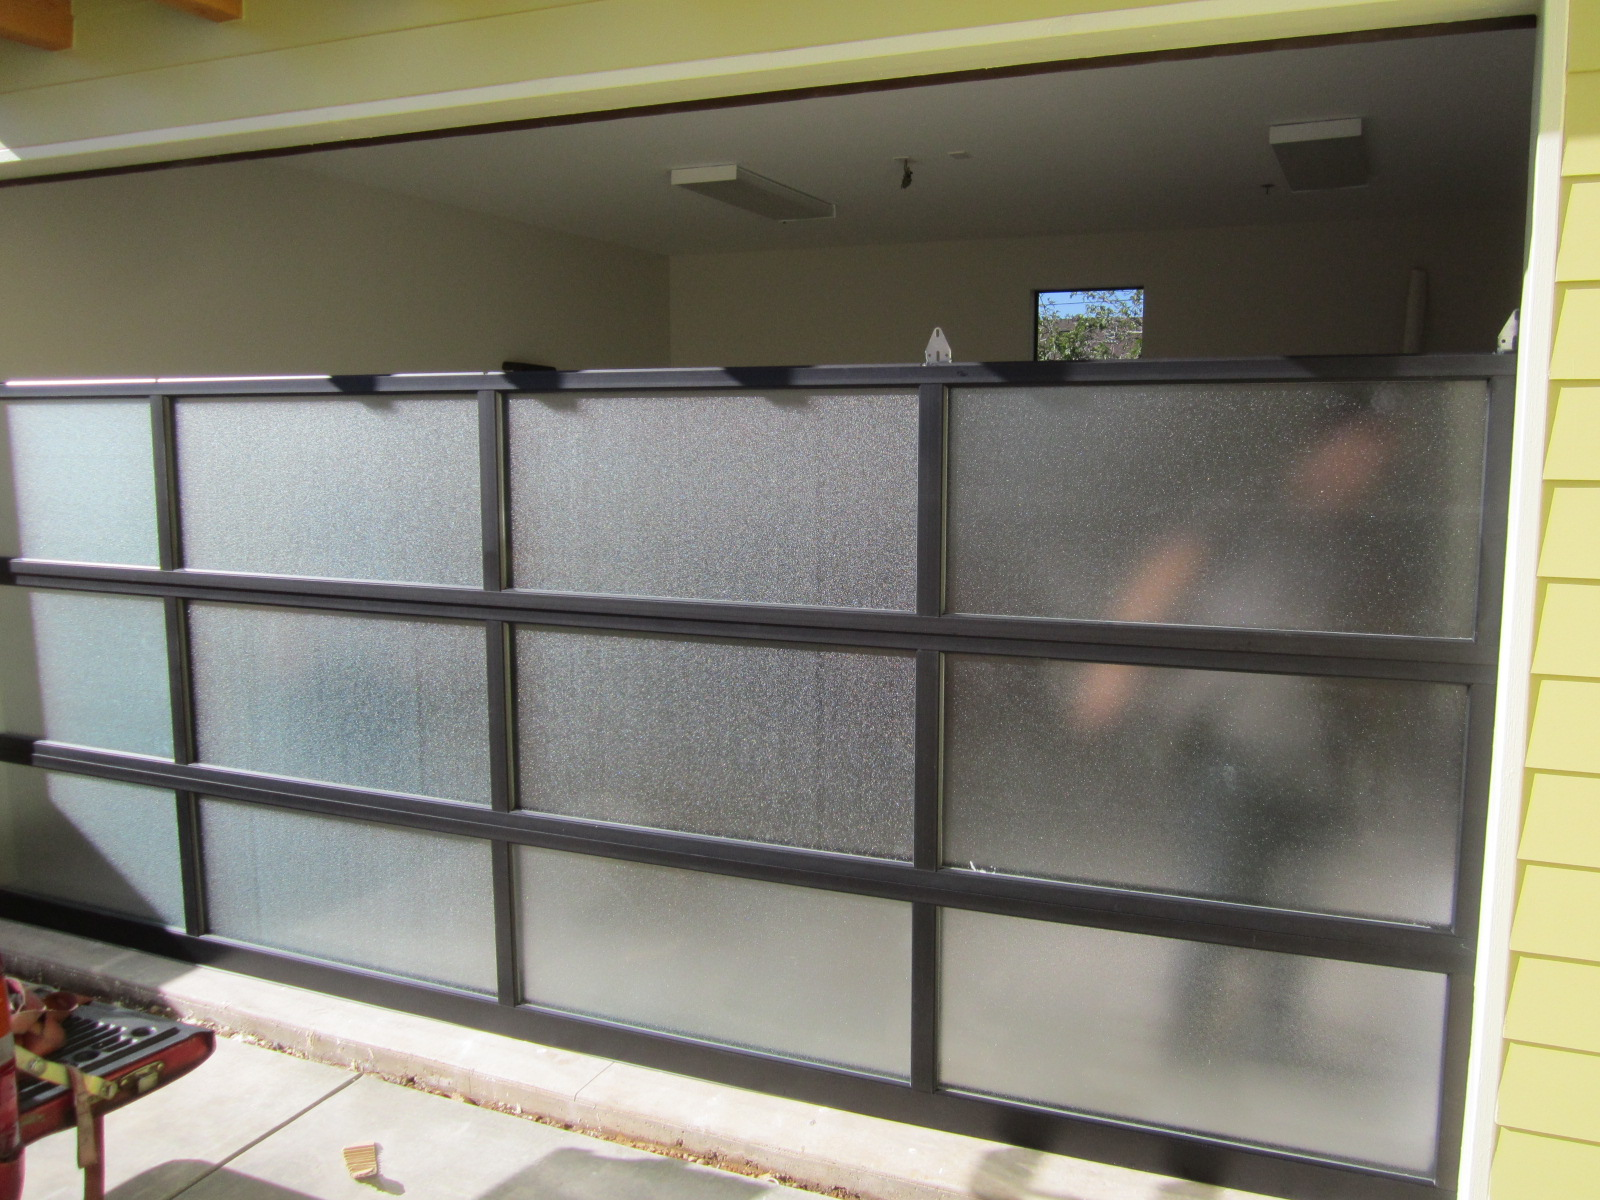 Glass garage door interior - We